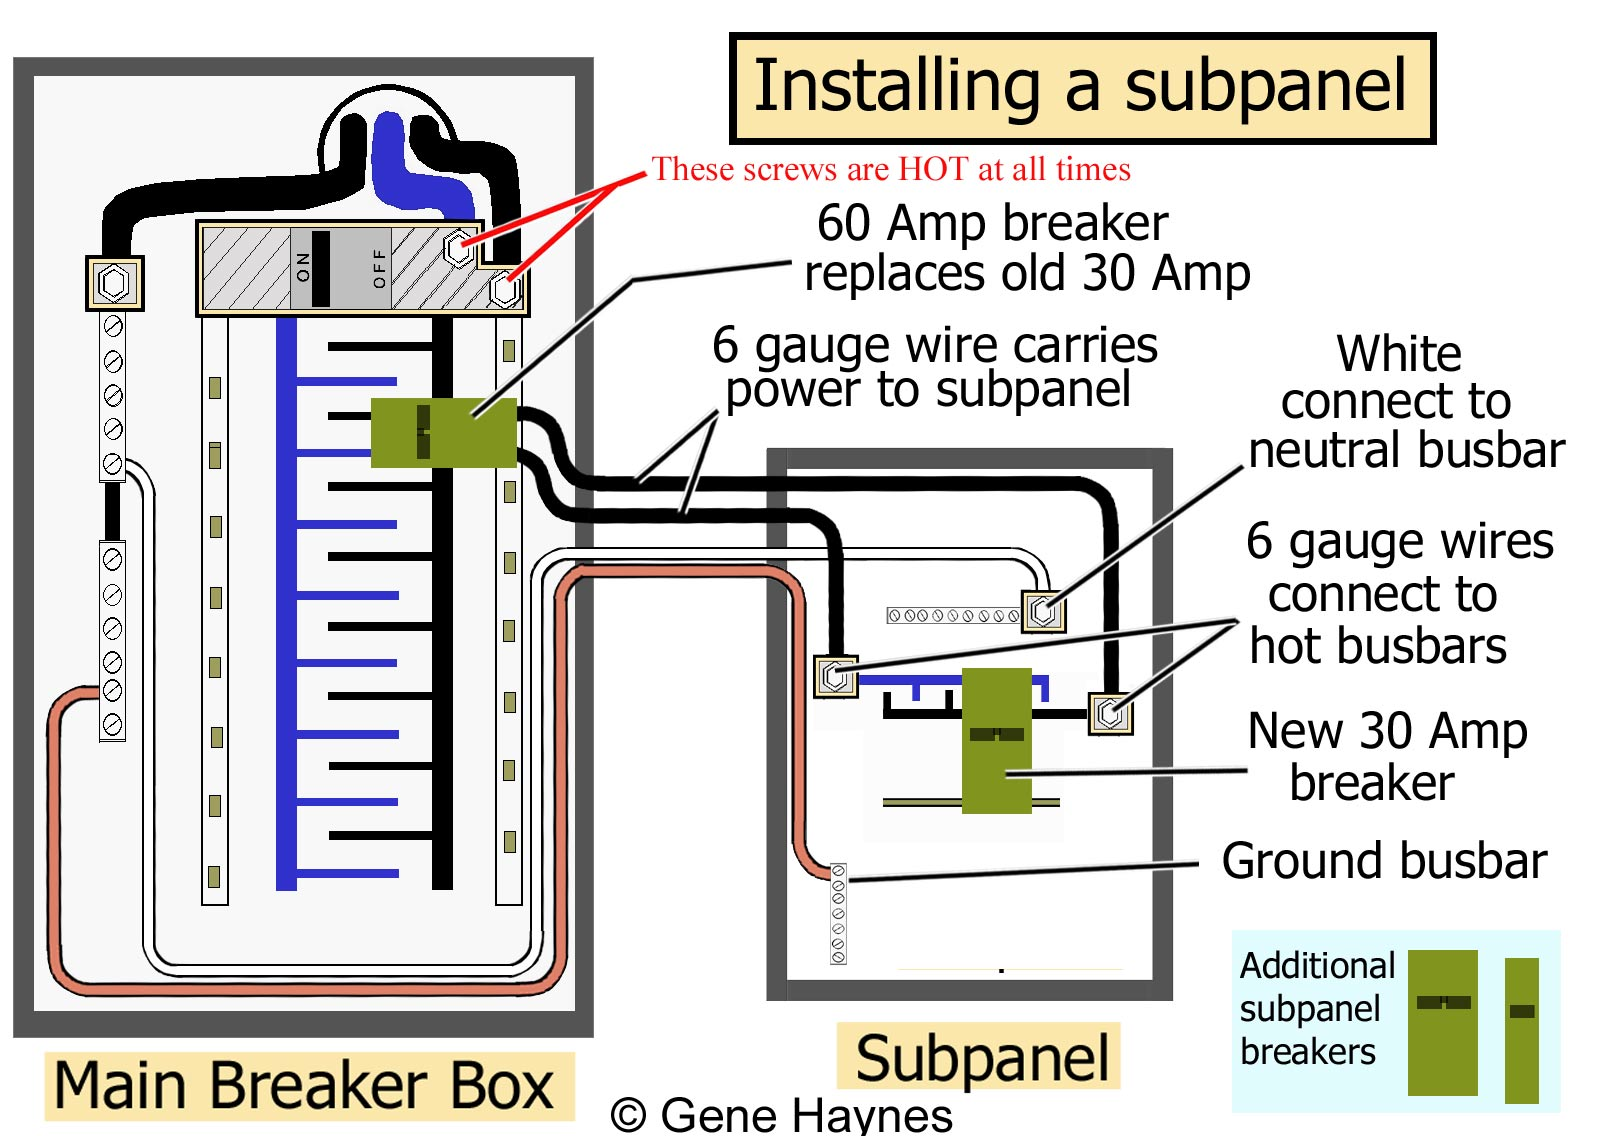 hight resolution of 1 60 150 amp breaker replaces any 240 breaker in main box near top of box